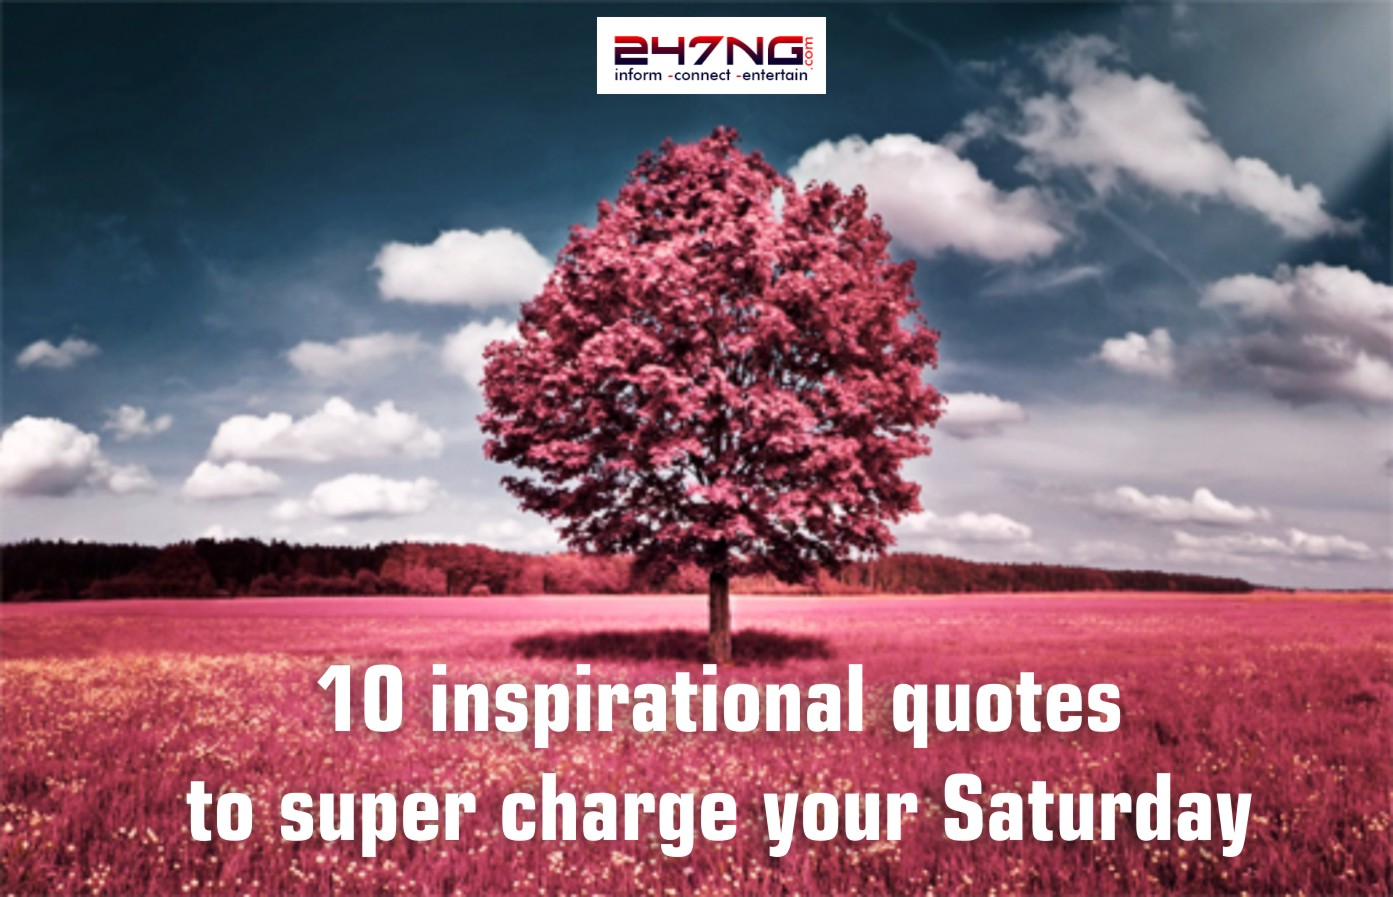 10 inspirational quotes  to super charge your Saturday